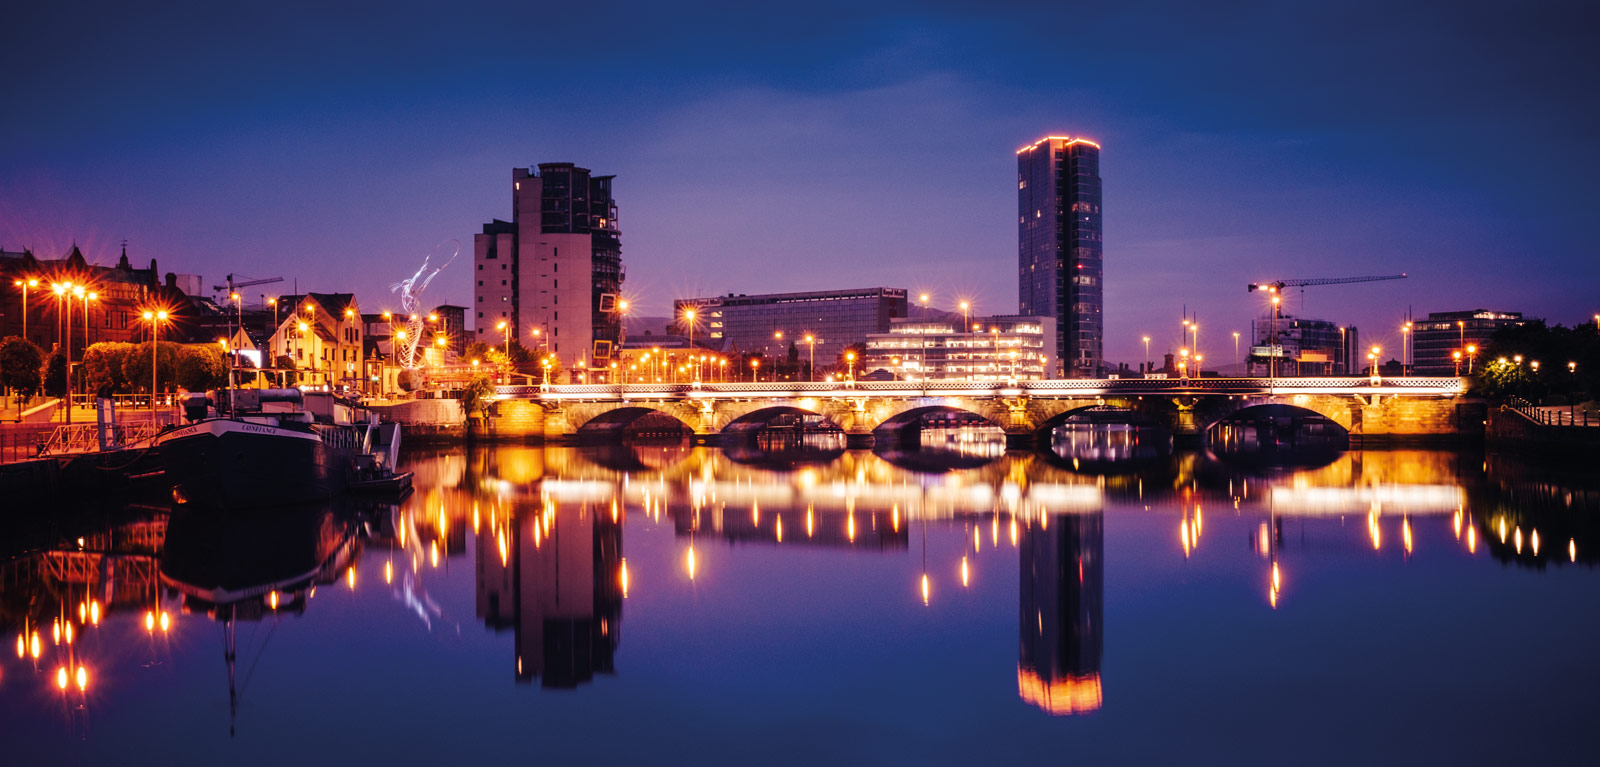 Belfast City - Illuminated, skyline at night